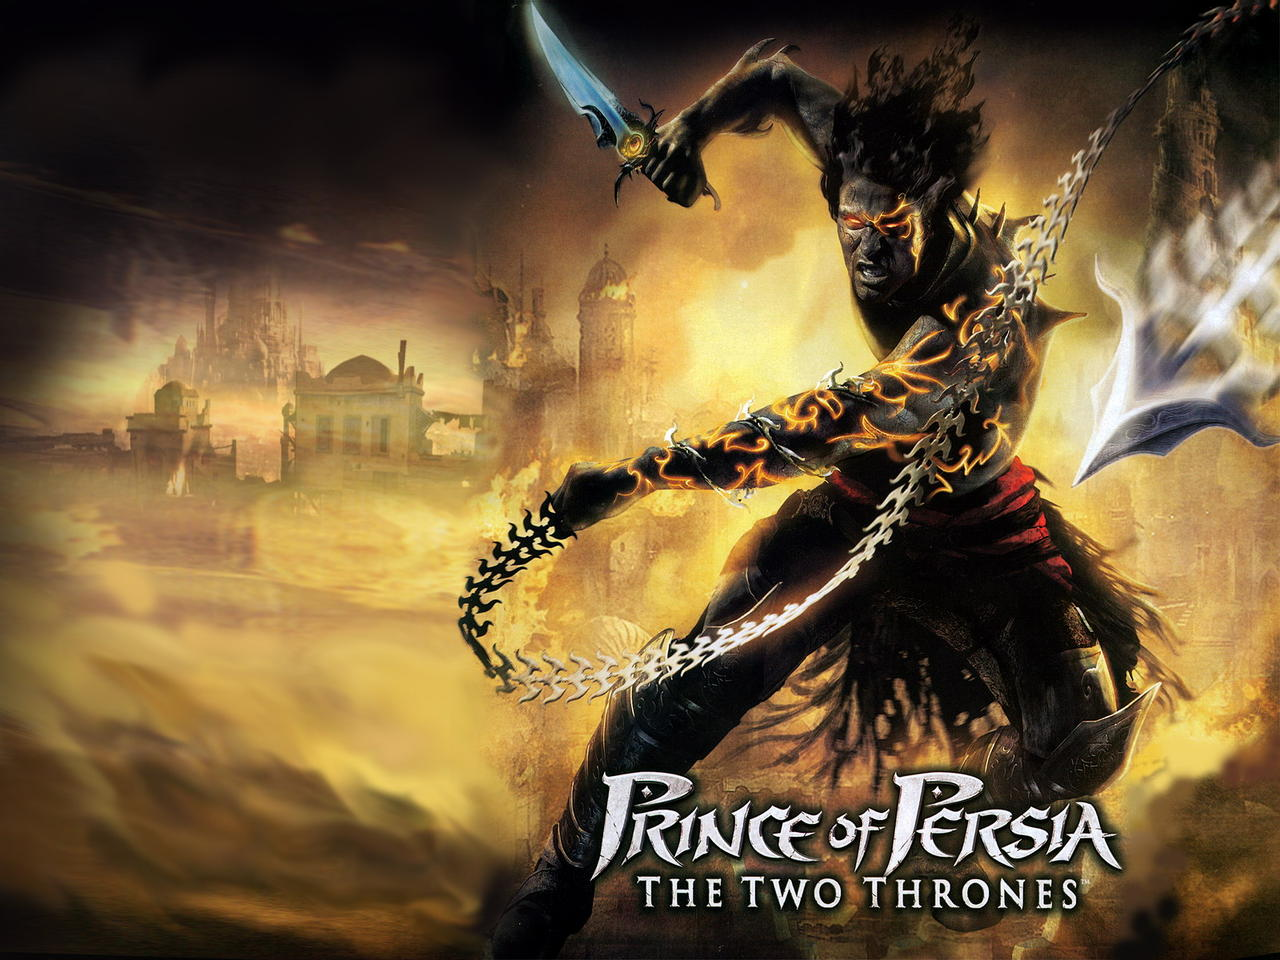 Prince of Persia The Two Thrones (Video Game ) - IMDb